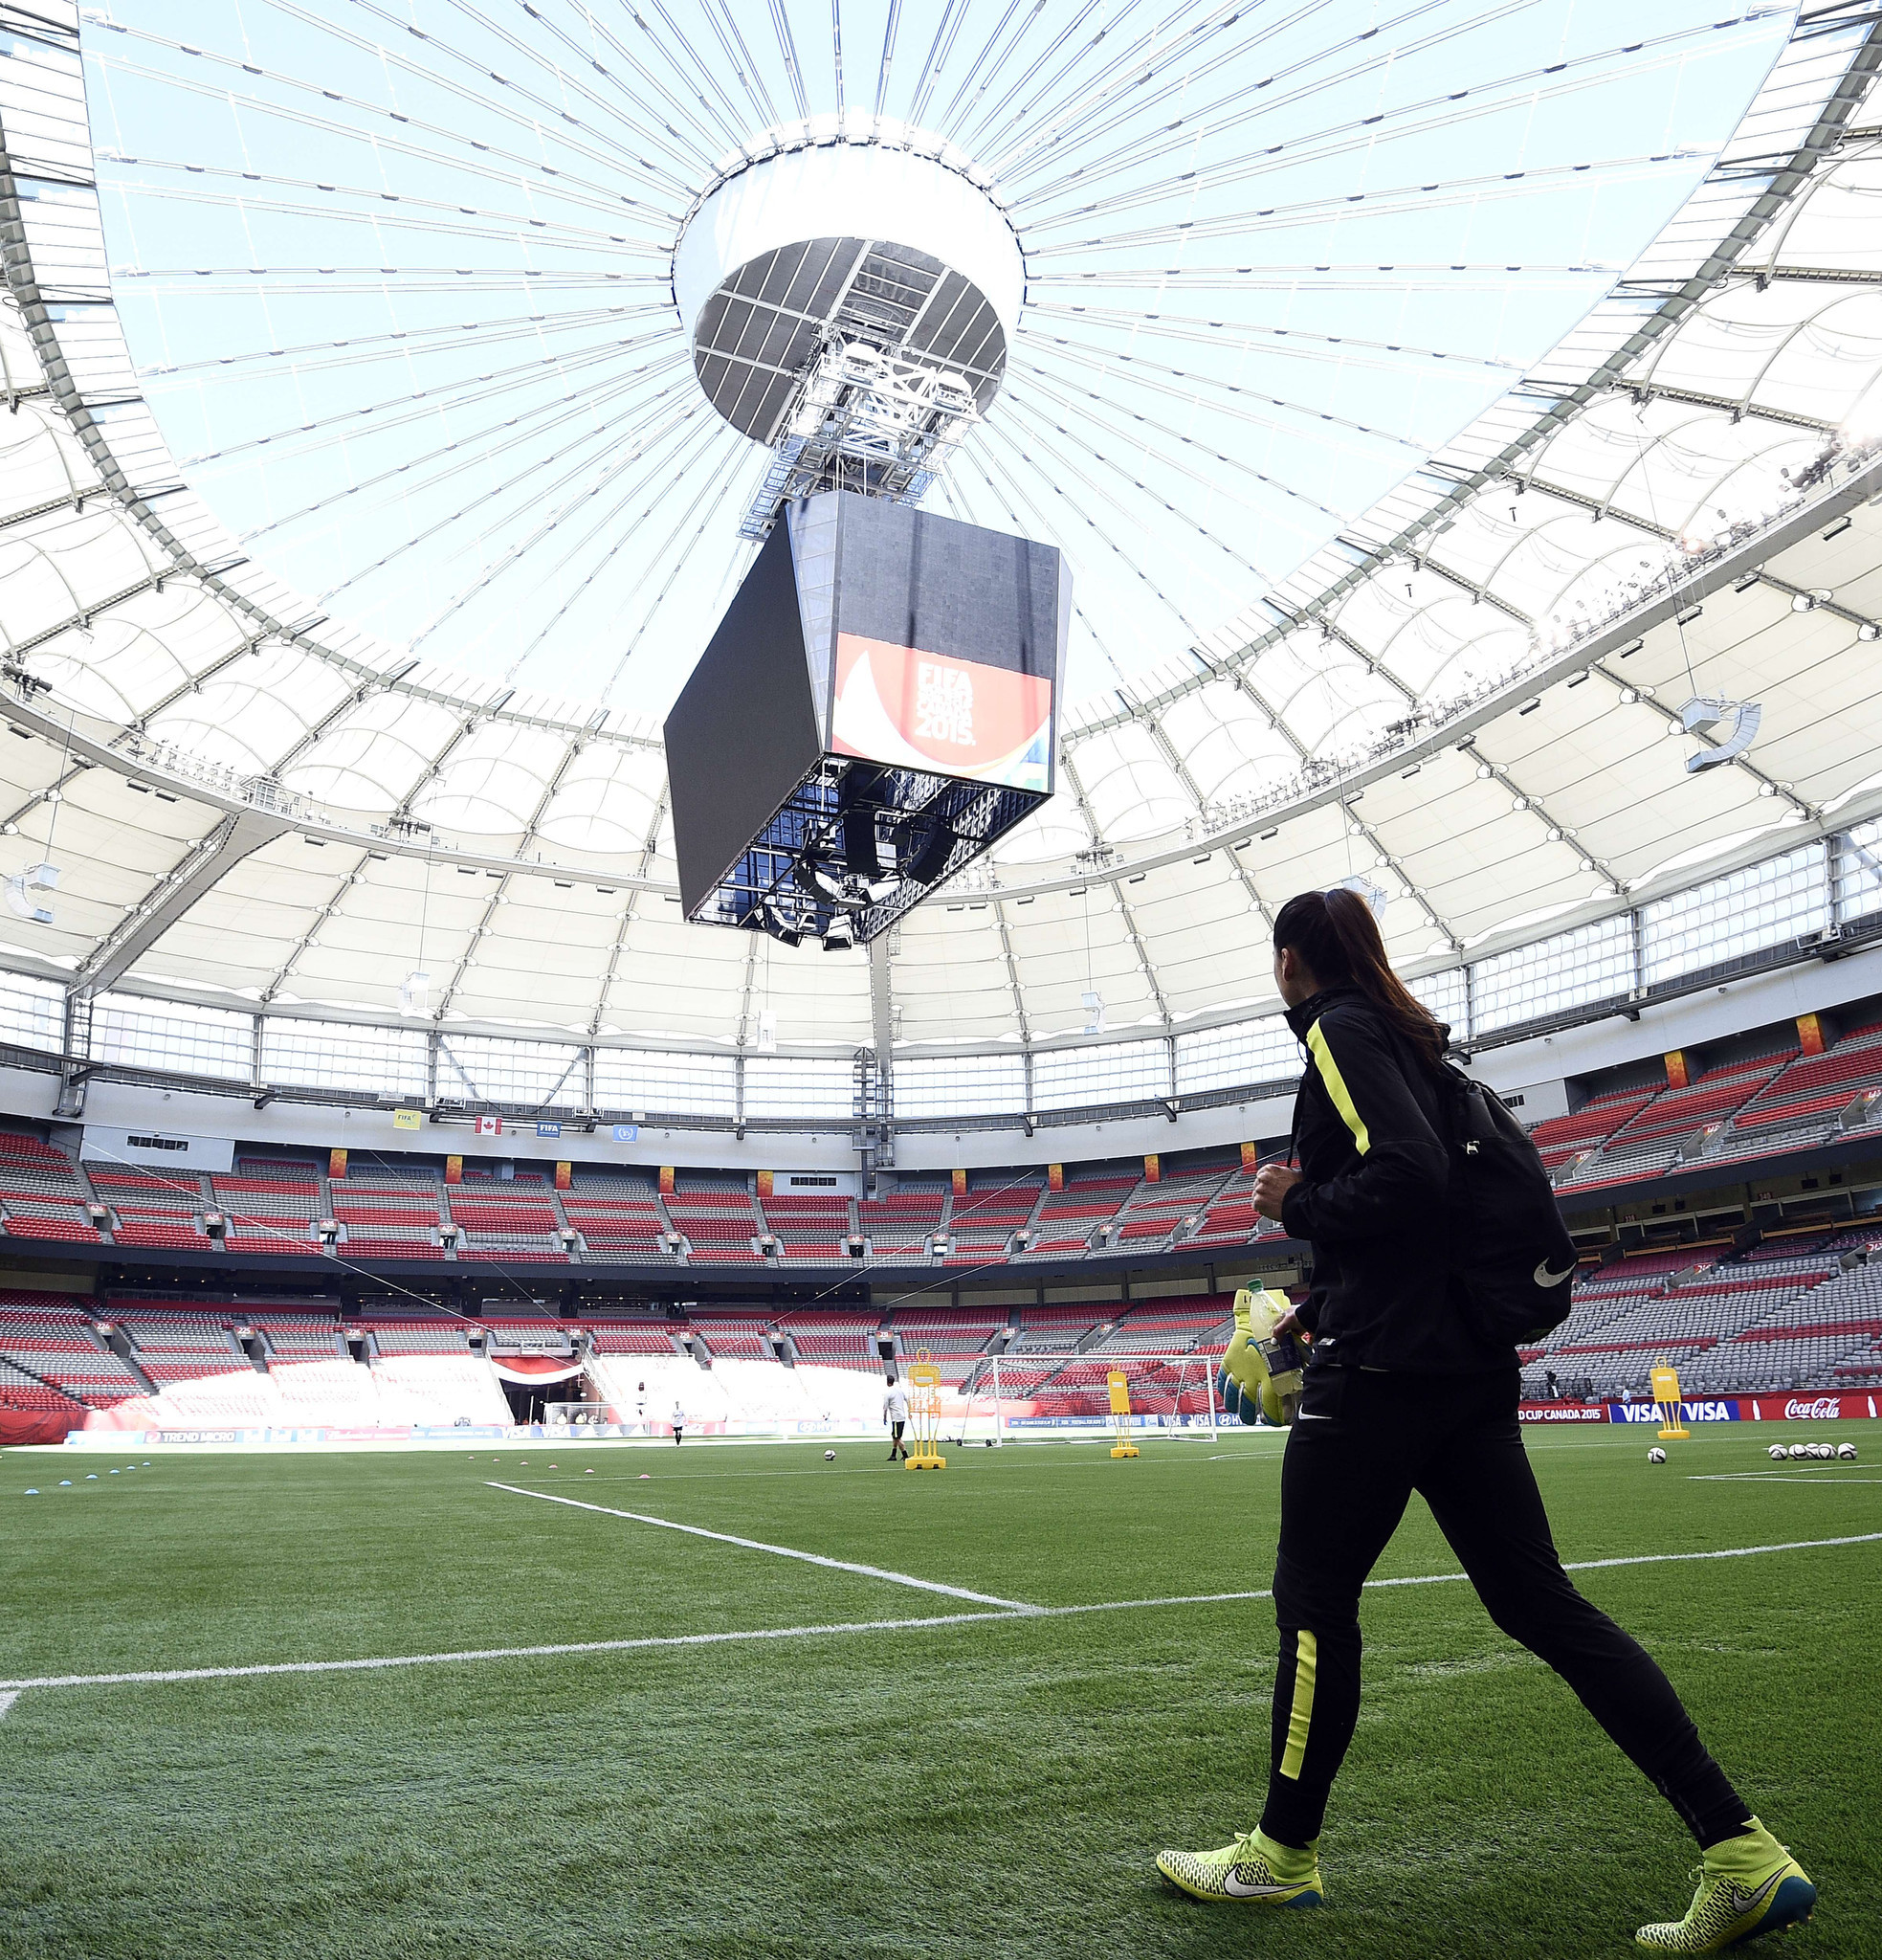 Americans focus on another shot at elusive World Cup crown